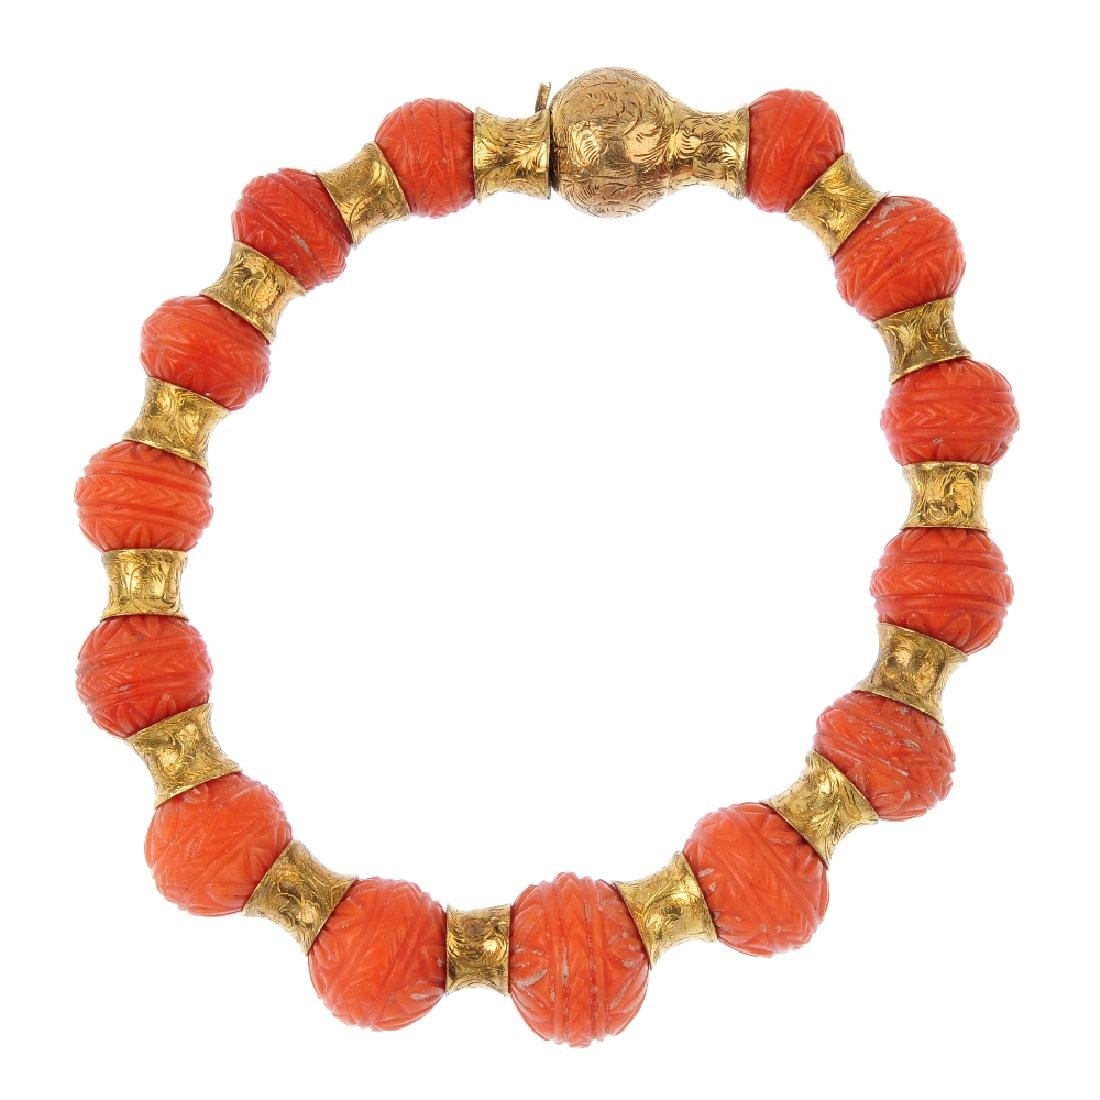 A coral bracelet. Designed as a series of floral